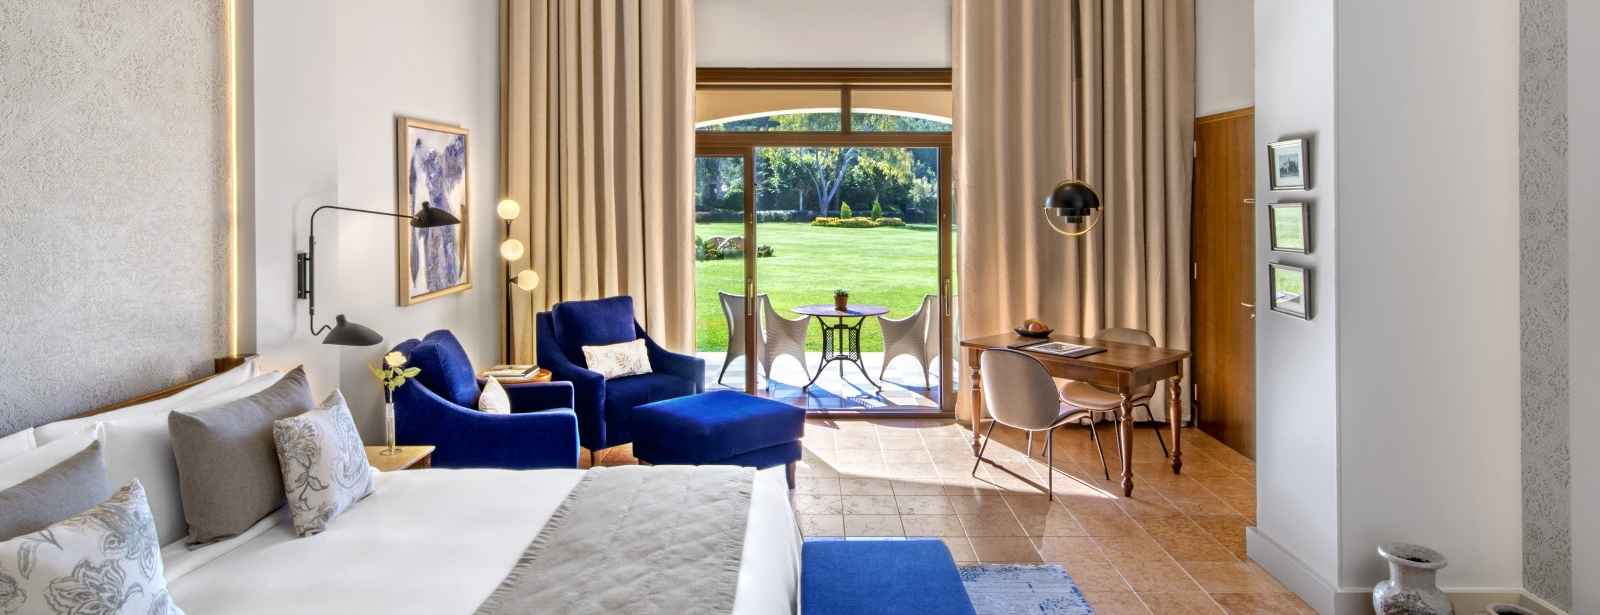 New refurbished Junior Suite with Garden View at The St. Regis Mardavall